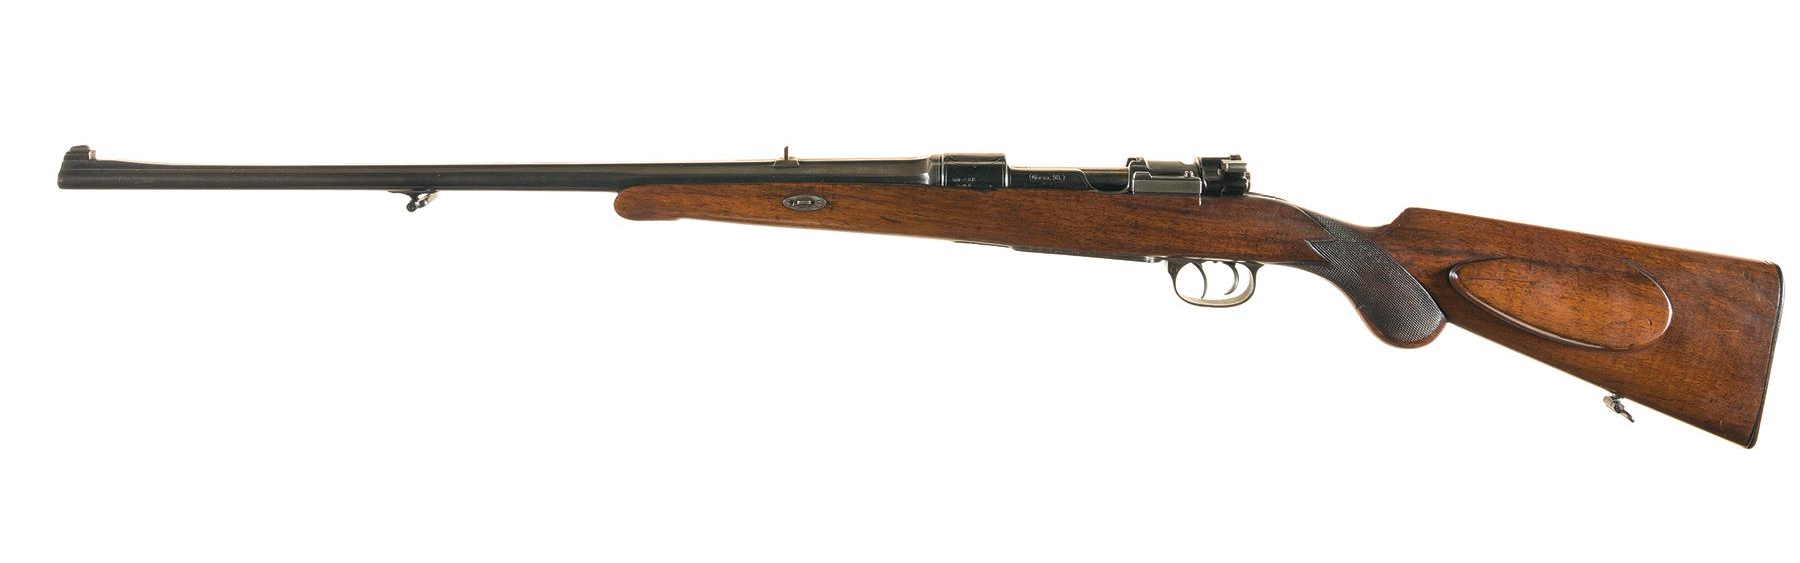 The stock wood on this rifle looks quite plain but it is listed as walnut and if given a patient oil finish could produce some nice surprises.